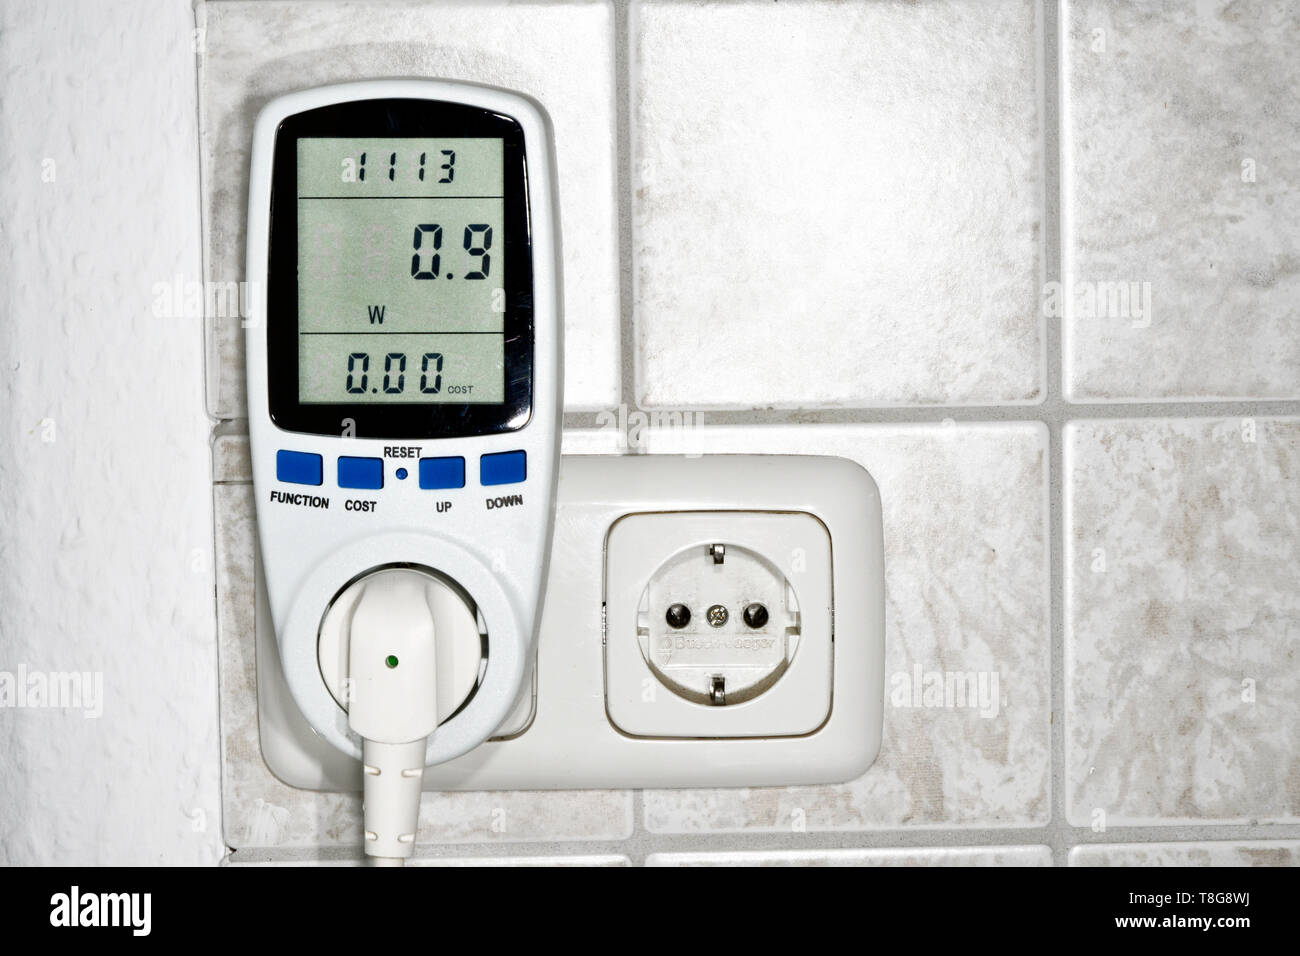 Electricity Meter Stock Photos & Electricity Meter Stock Images - Alamy